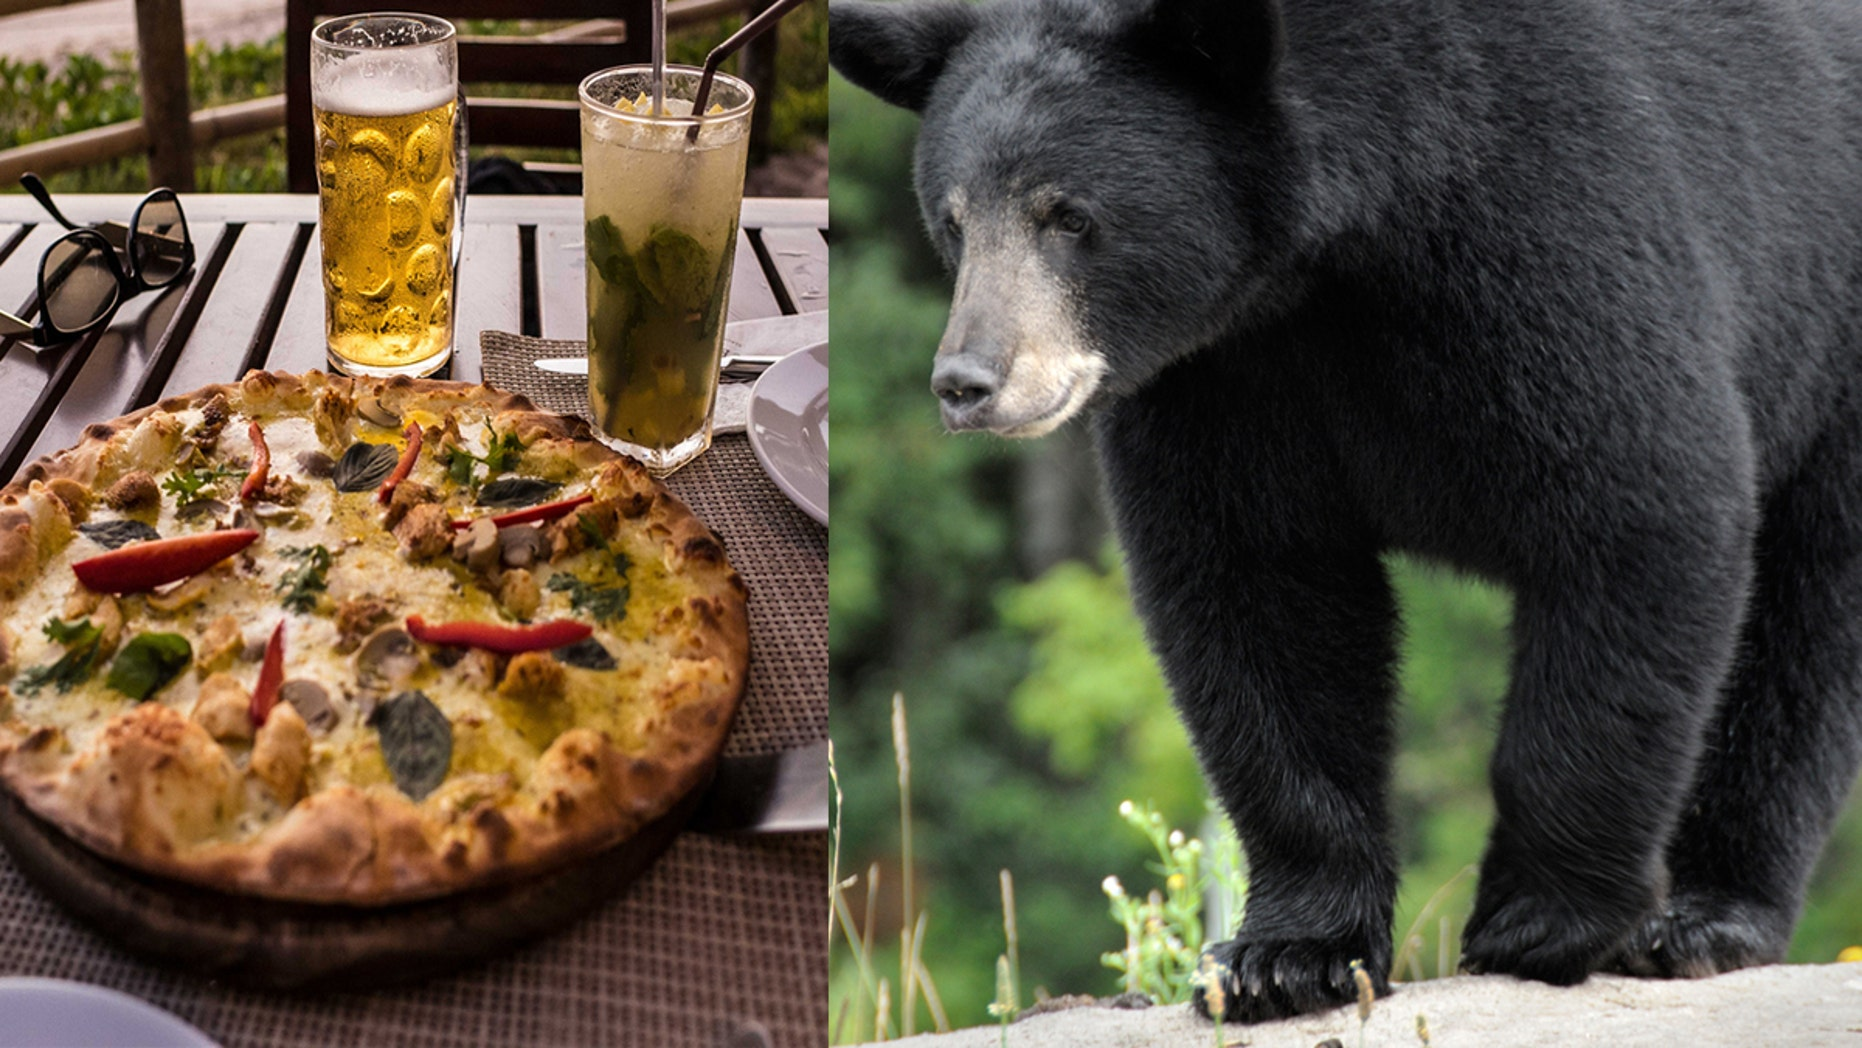 Carolyn Ball, a waitress at Howard's Steakhouse in downtown Gatlinburg, said a young black bear cub came up from the creek near the restaurant and helped himself to a customer's pizza.